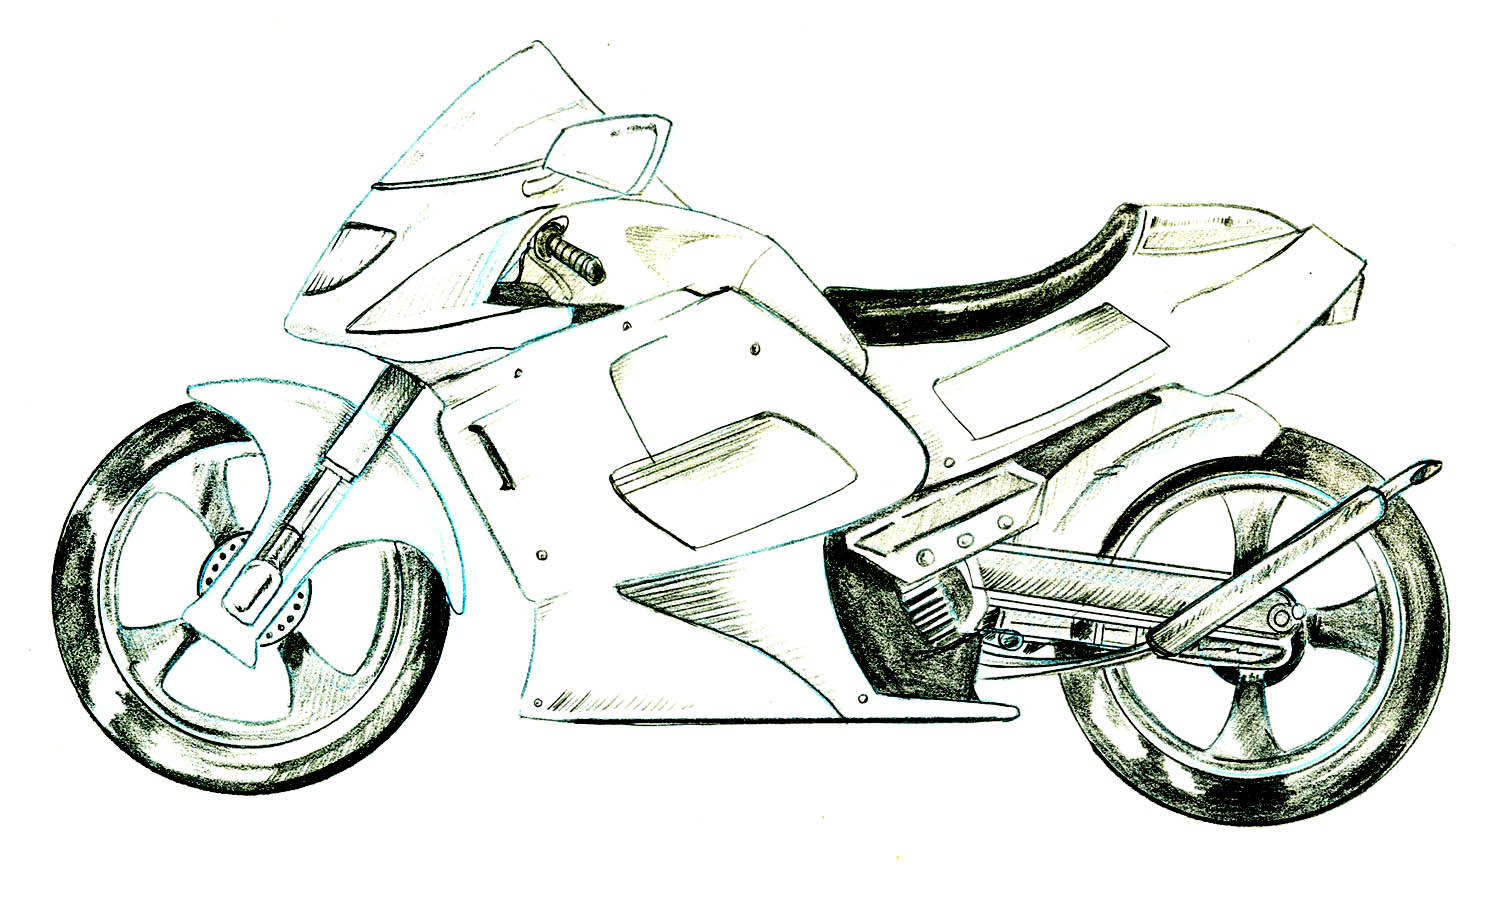 Drawn bike motor #4